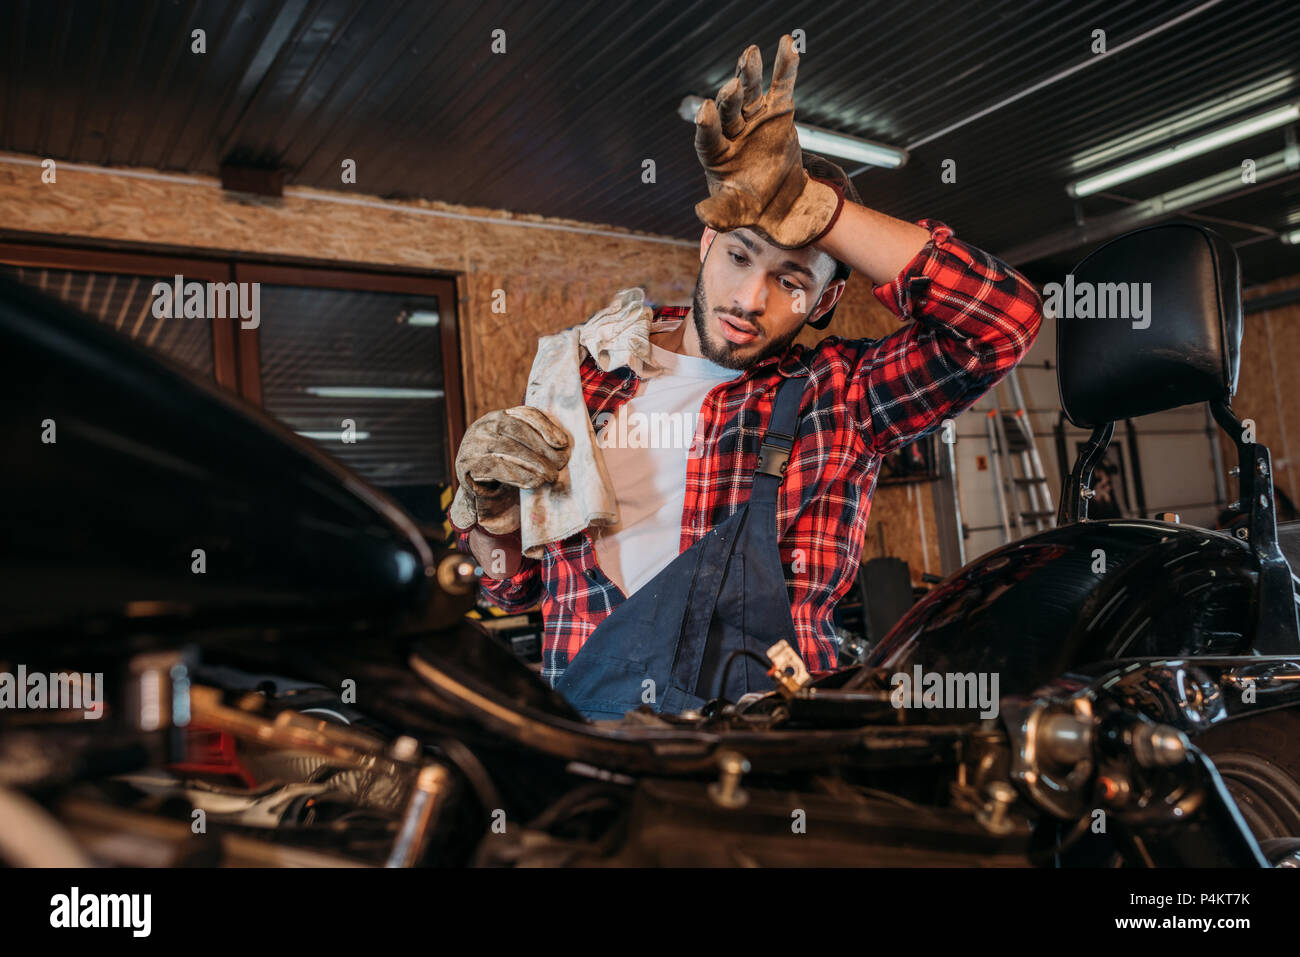 exhausted bike repair station worker wiping sweat from forehead after work at garage - Stock Image